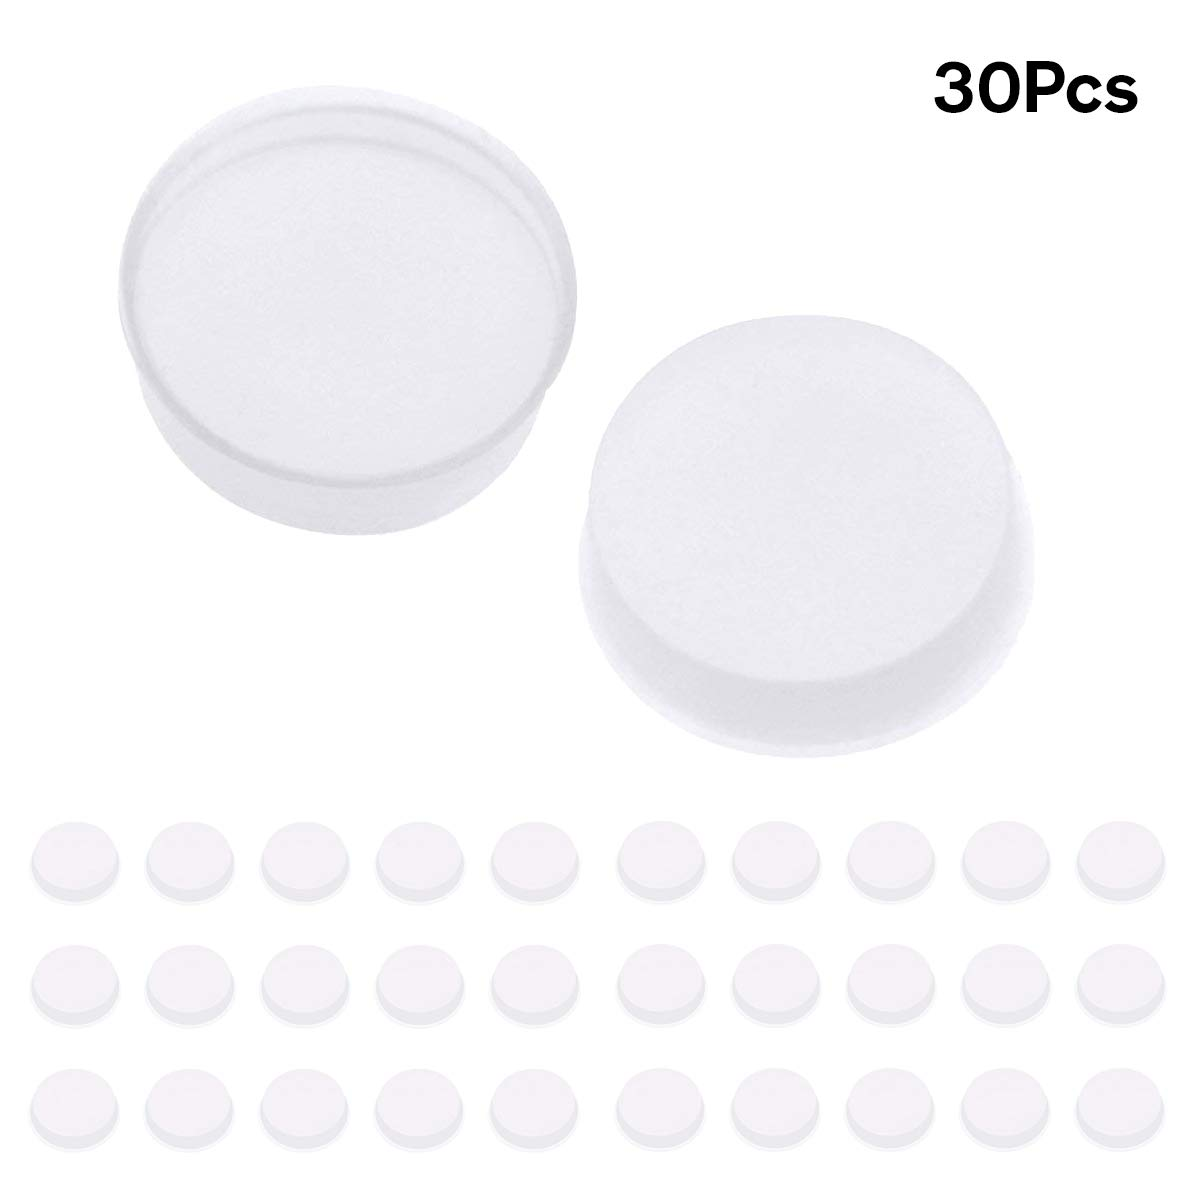 Soft Rubber Flute Plugs, Ladash Pack of 30 Open Hole Plug Covers Flutes Repair Parts Accessories, 7 X 3mm